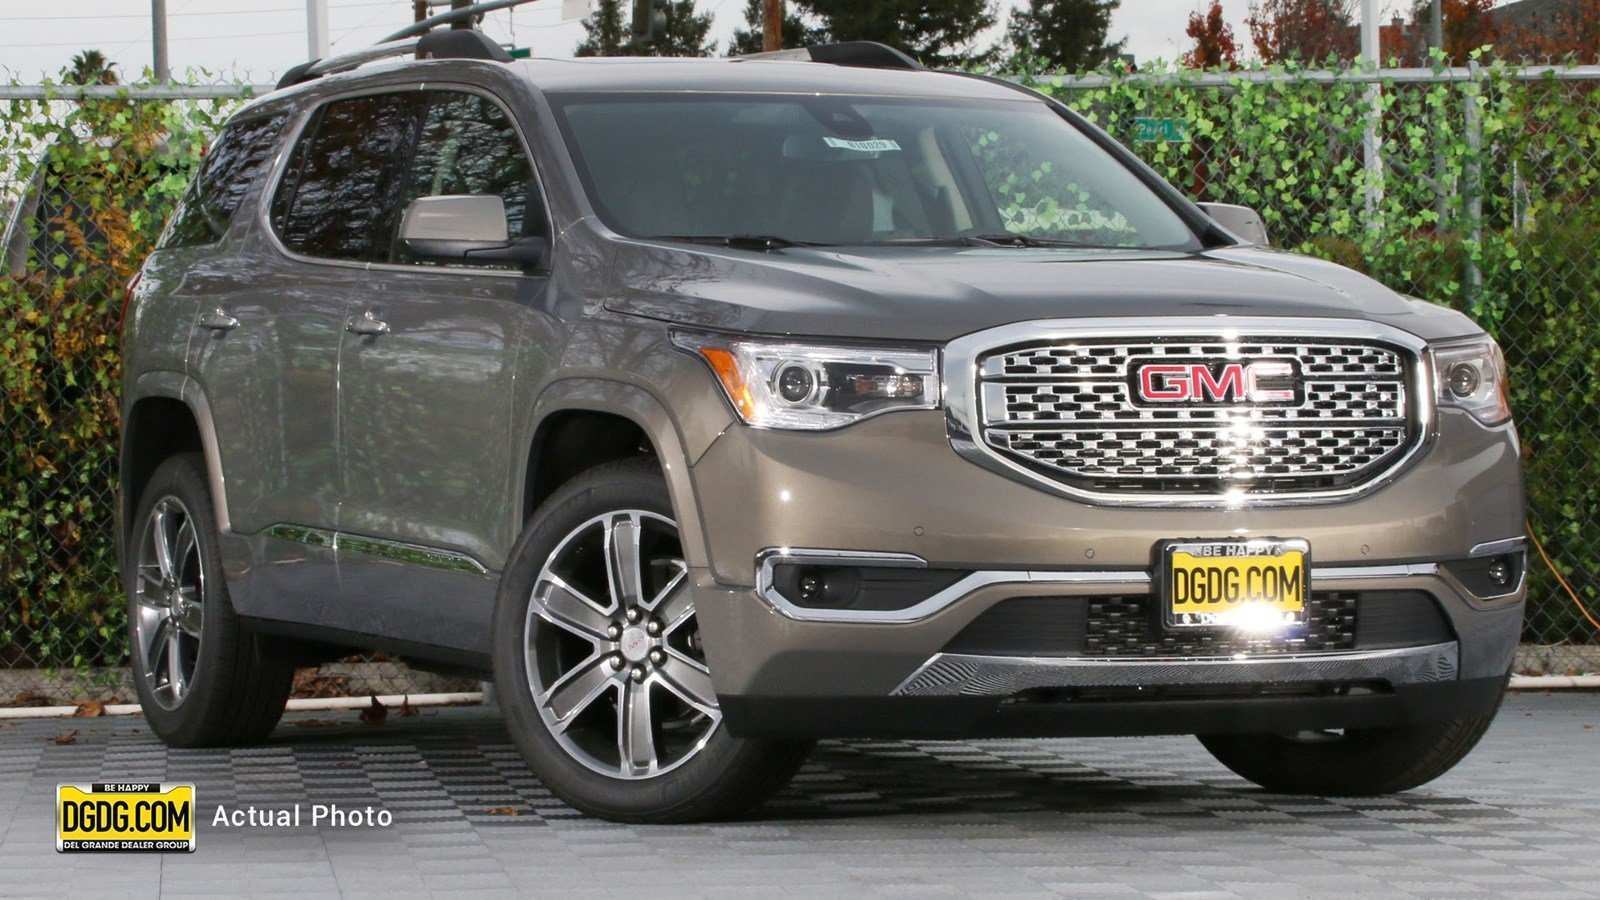 73 The Best 2019 Gmc Acadia Denali Rumors